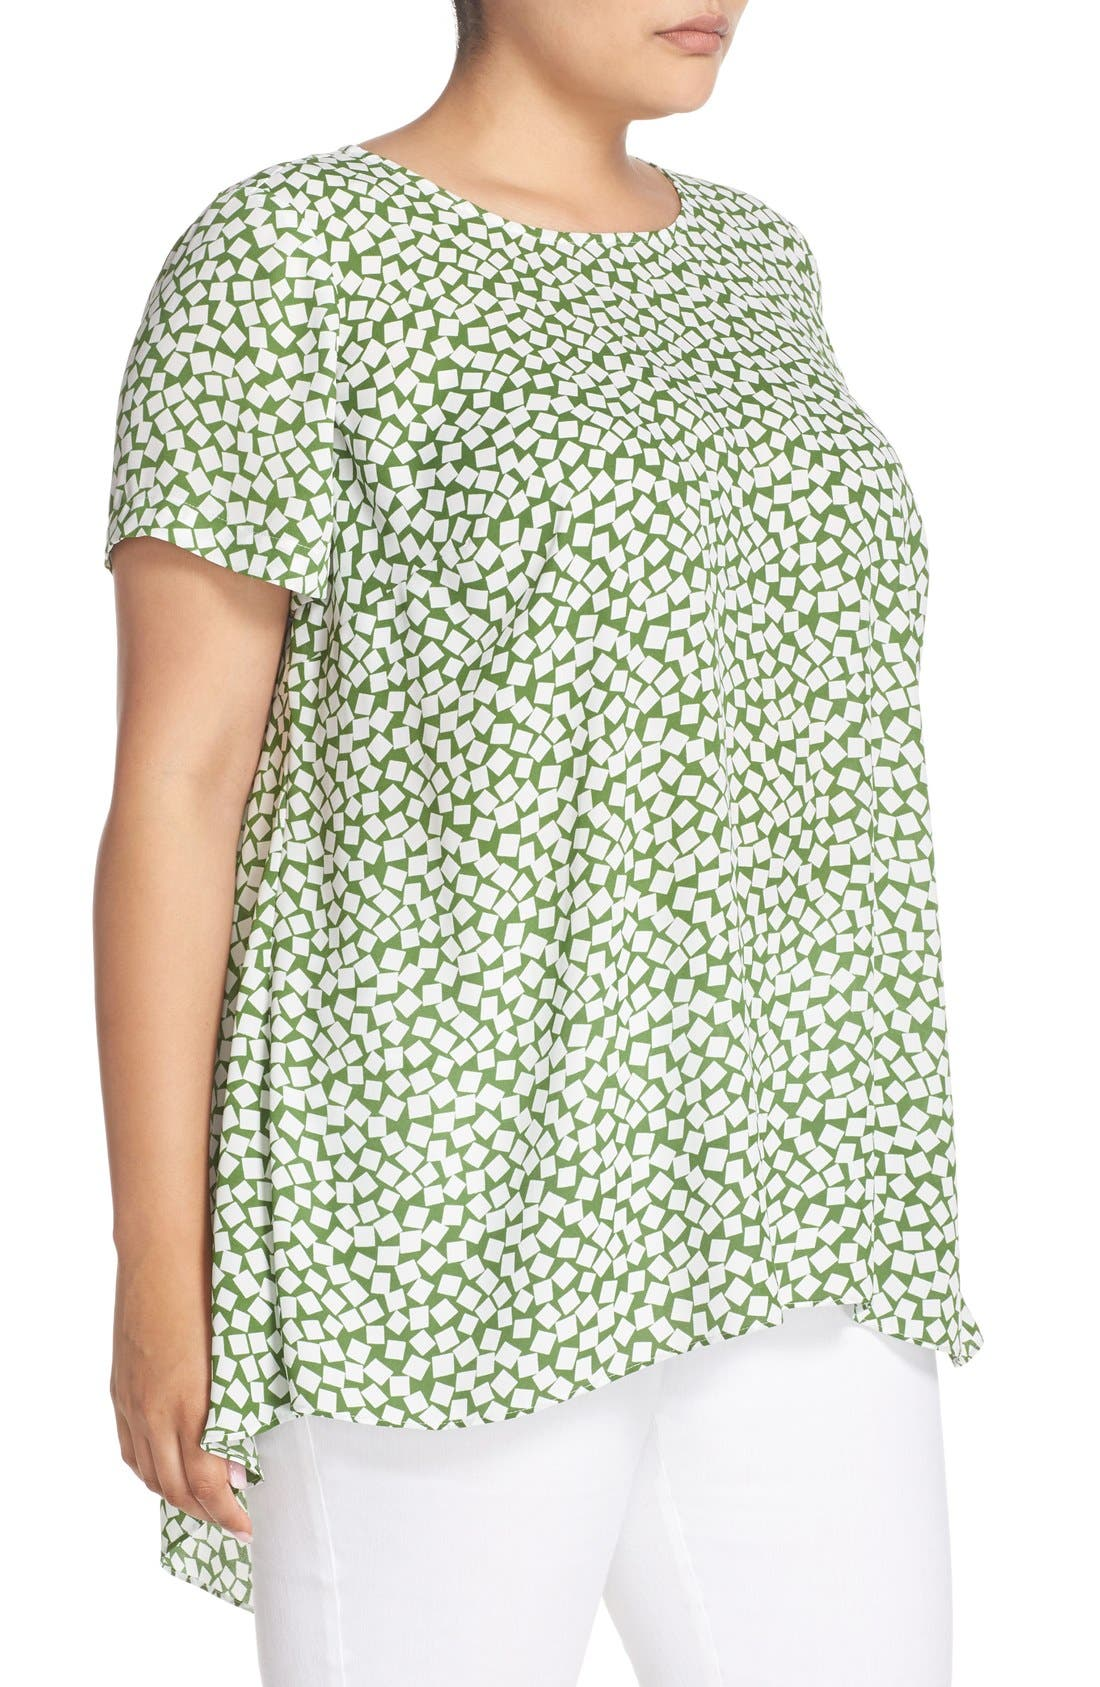 Alternate Image 3  - Vince Camuto 'Falling Cubes' Print Short Sleeve High/Low Blouse (Plus Size)